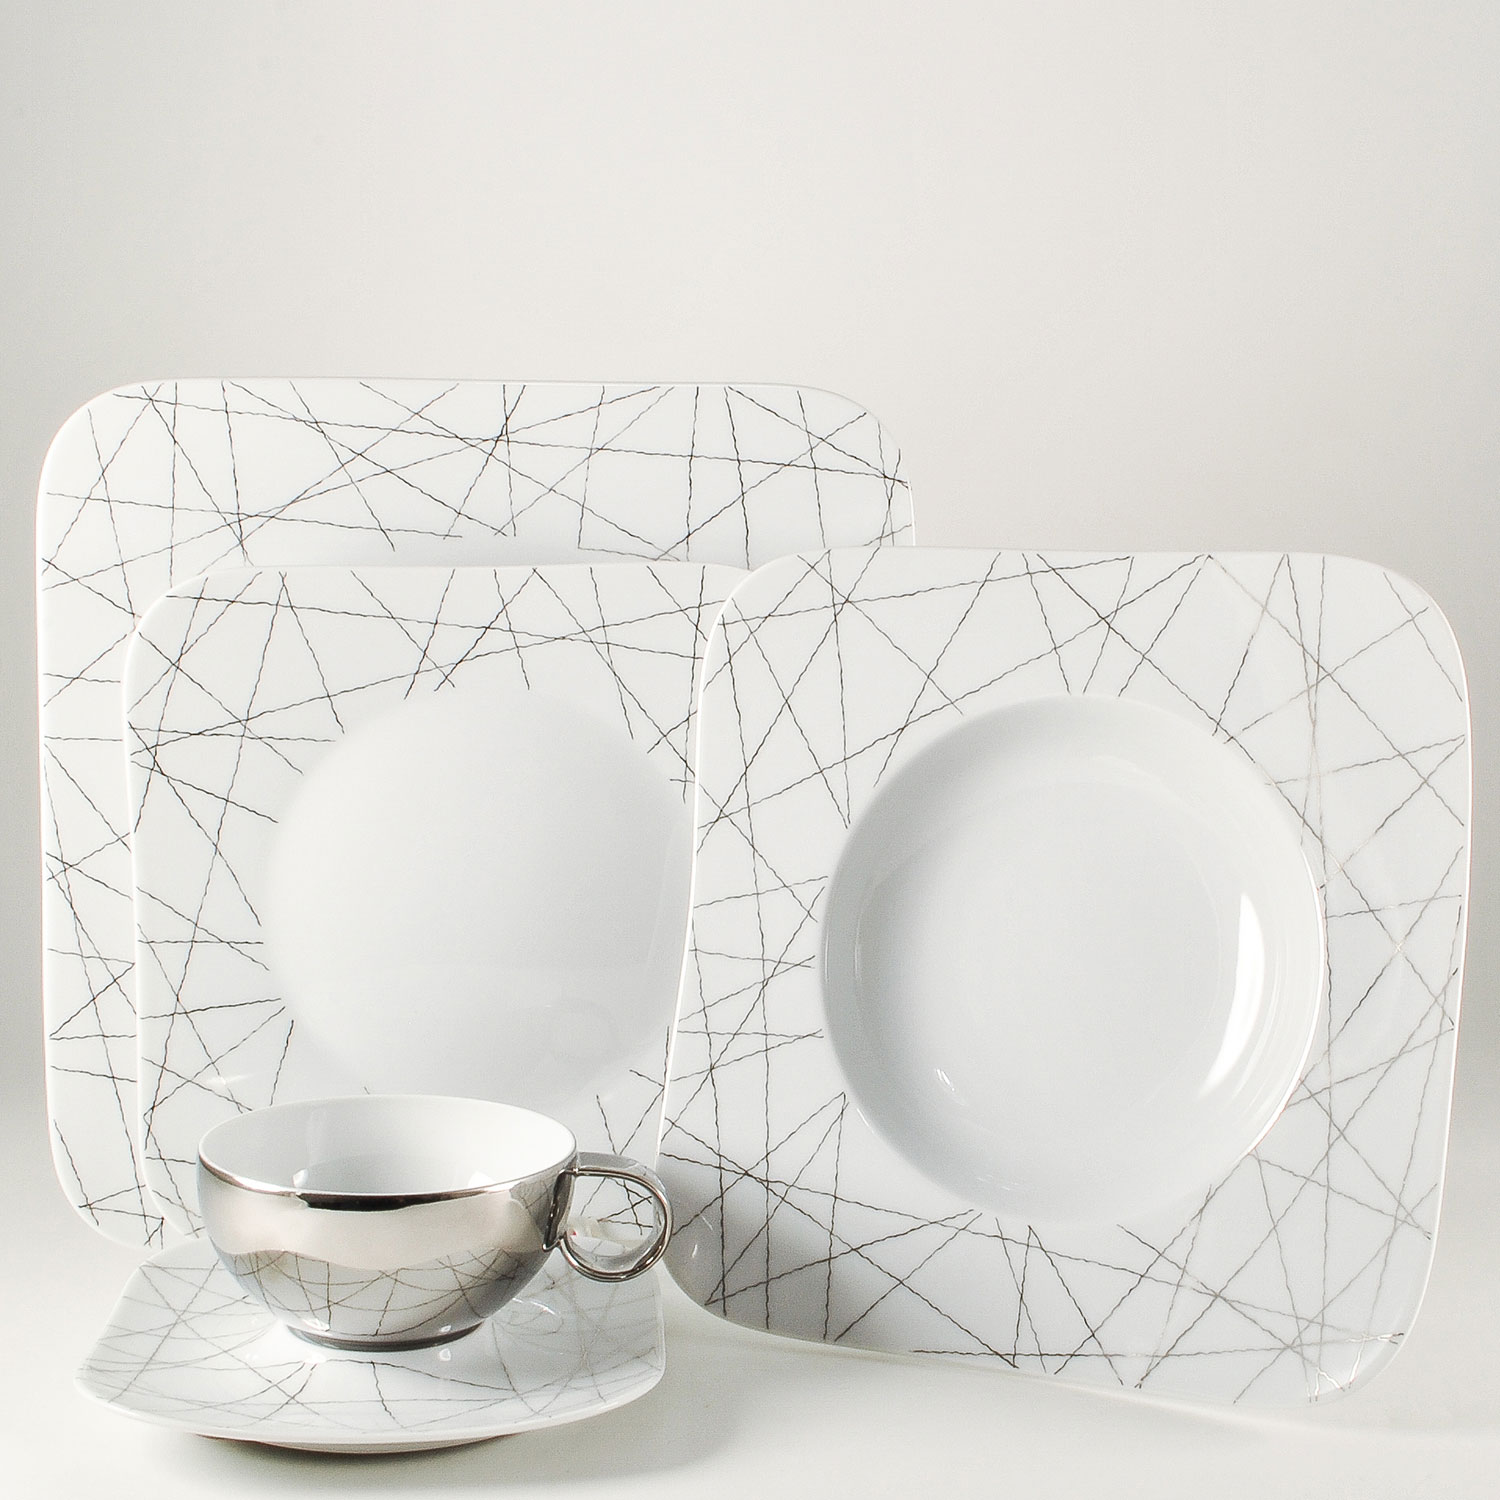 5 Piece Place Setting - Low Cup